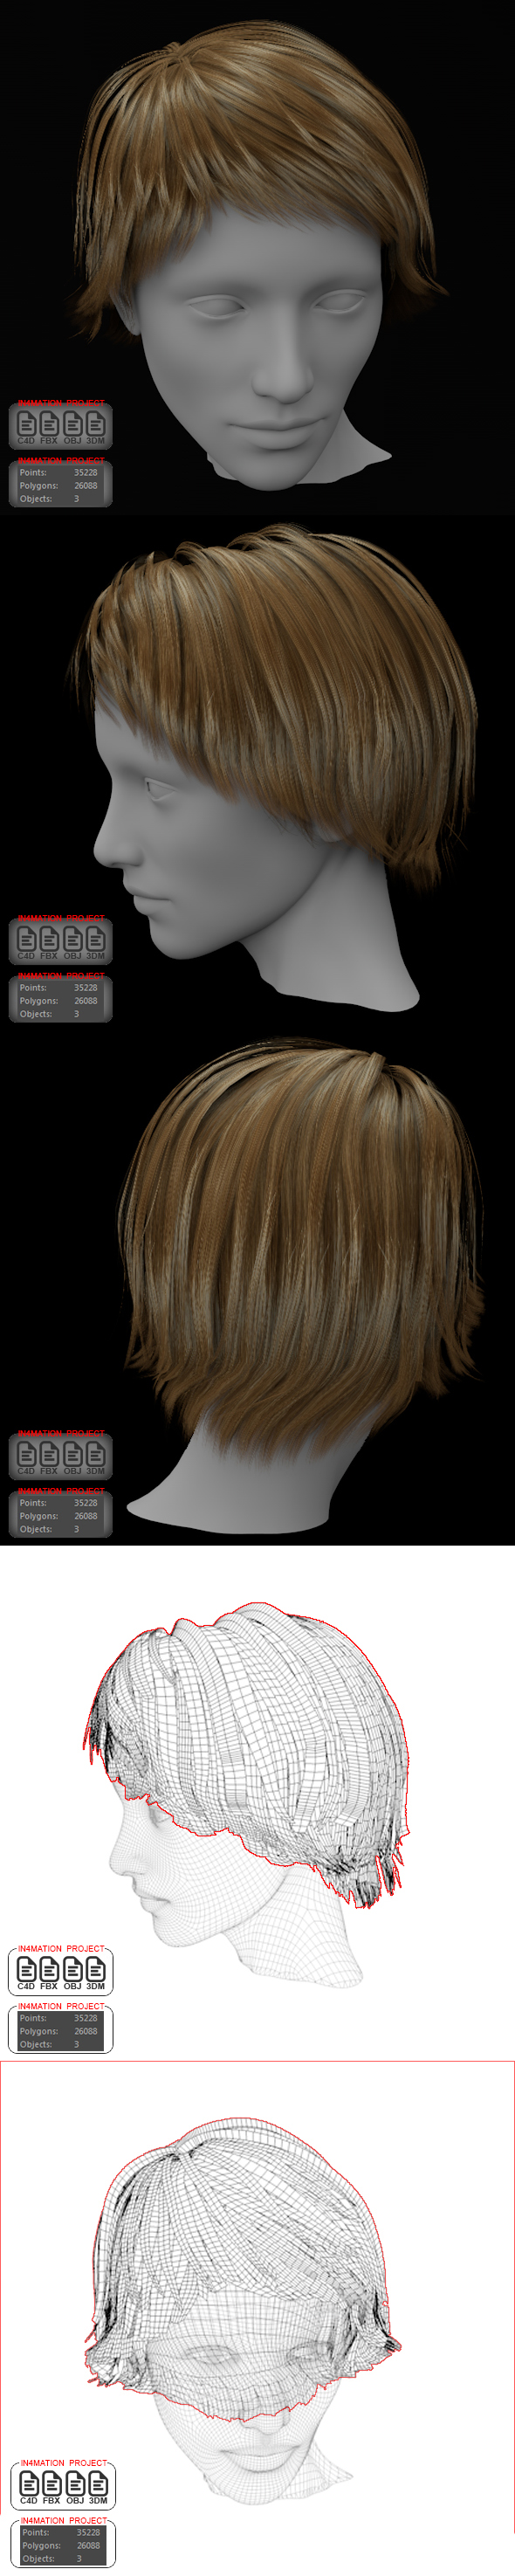 Short Hair Female 3D model - 3DOcean Item for Sale